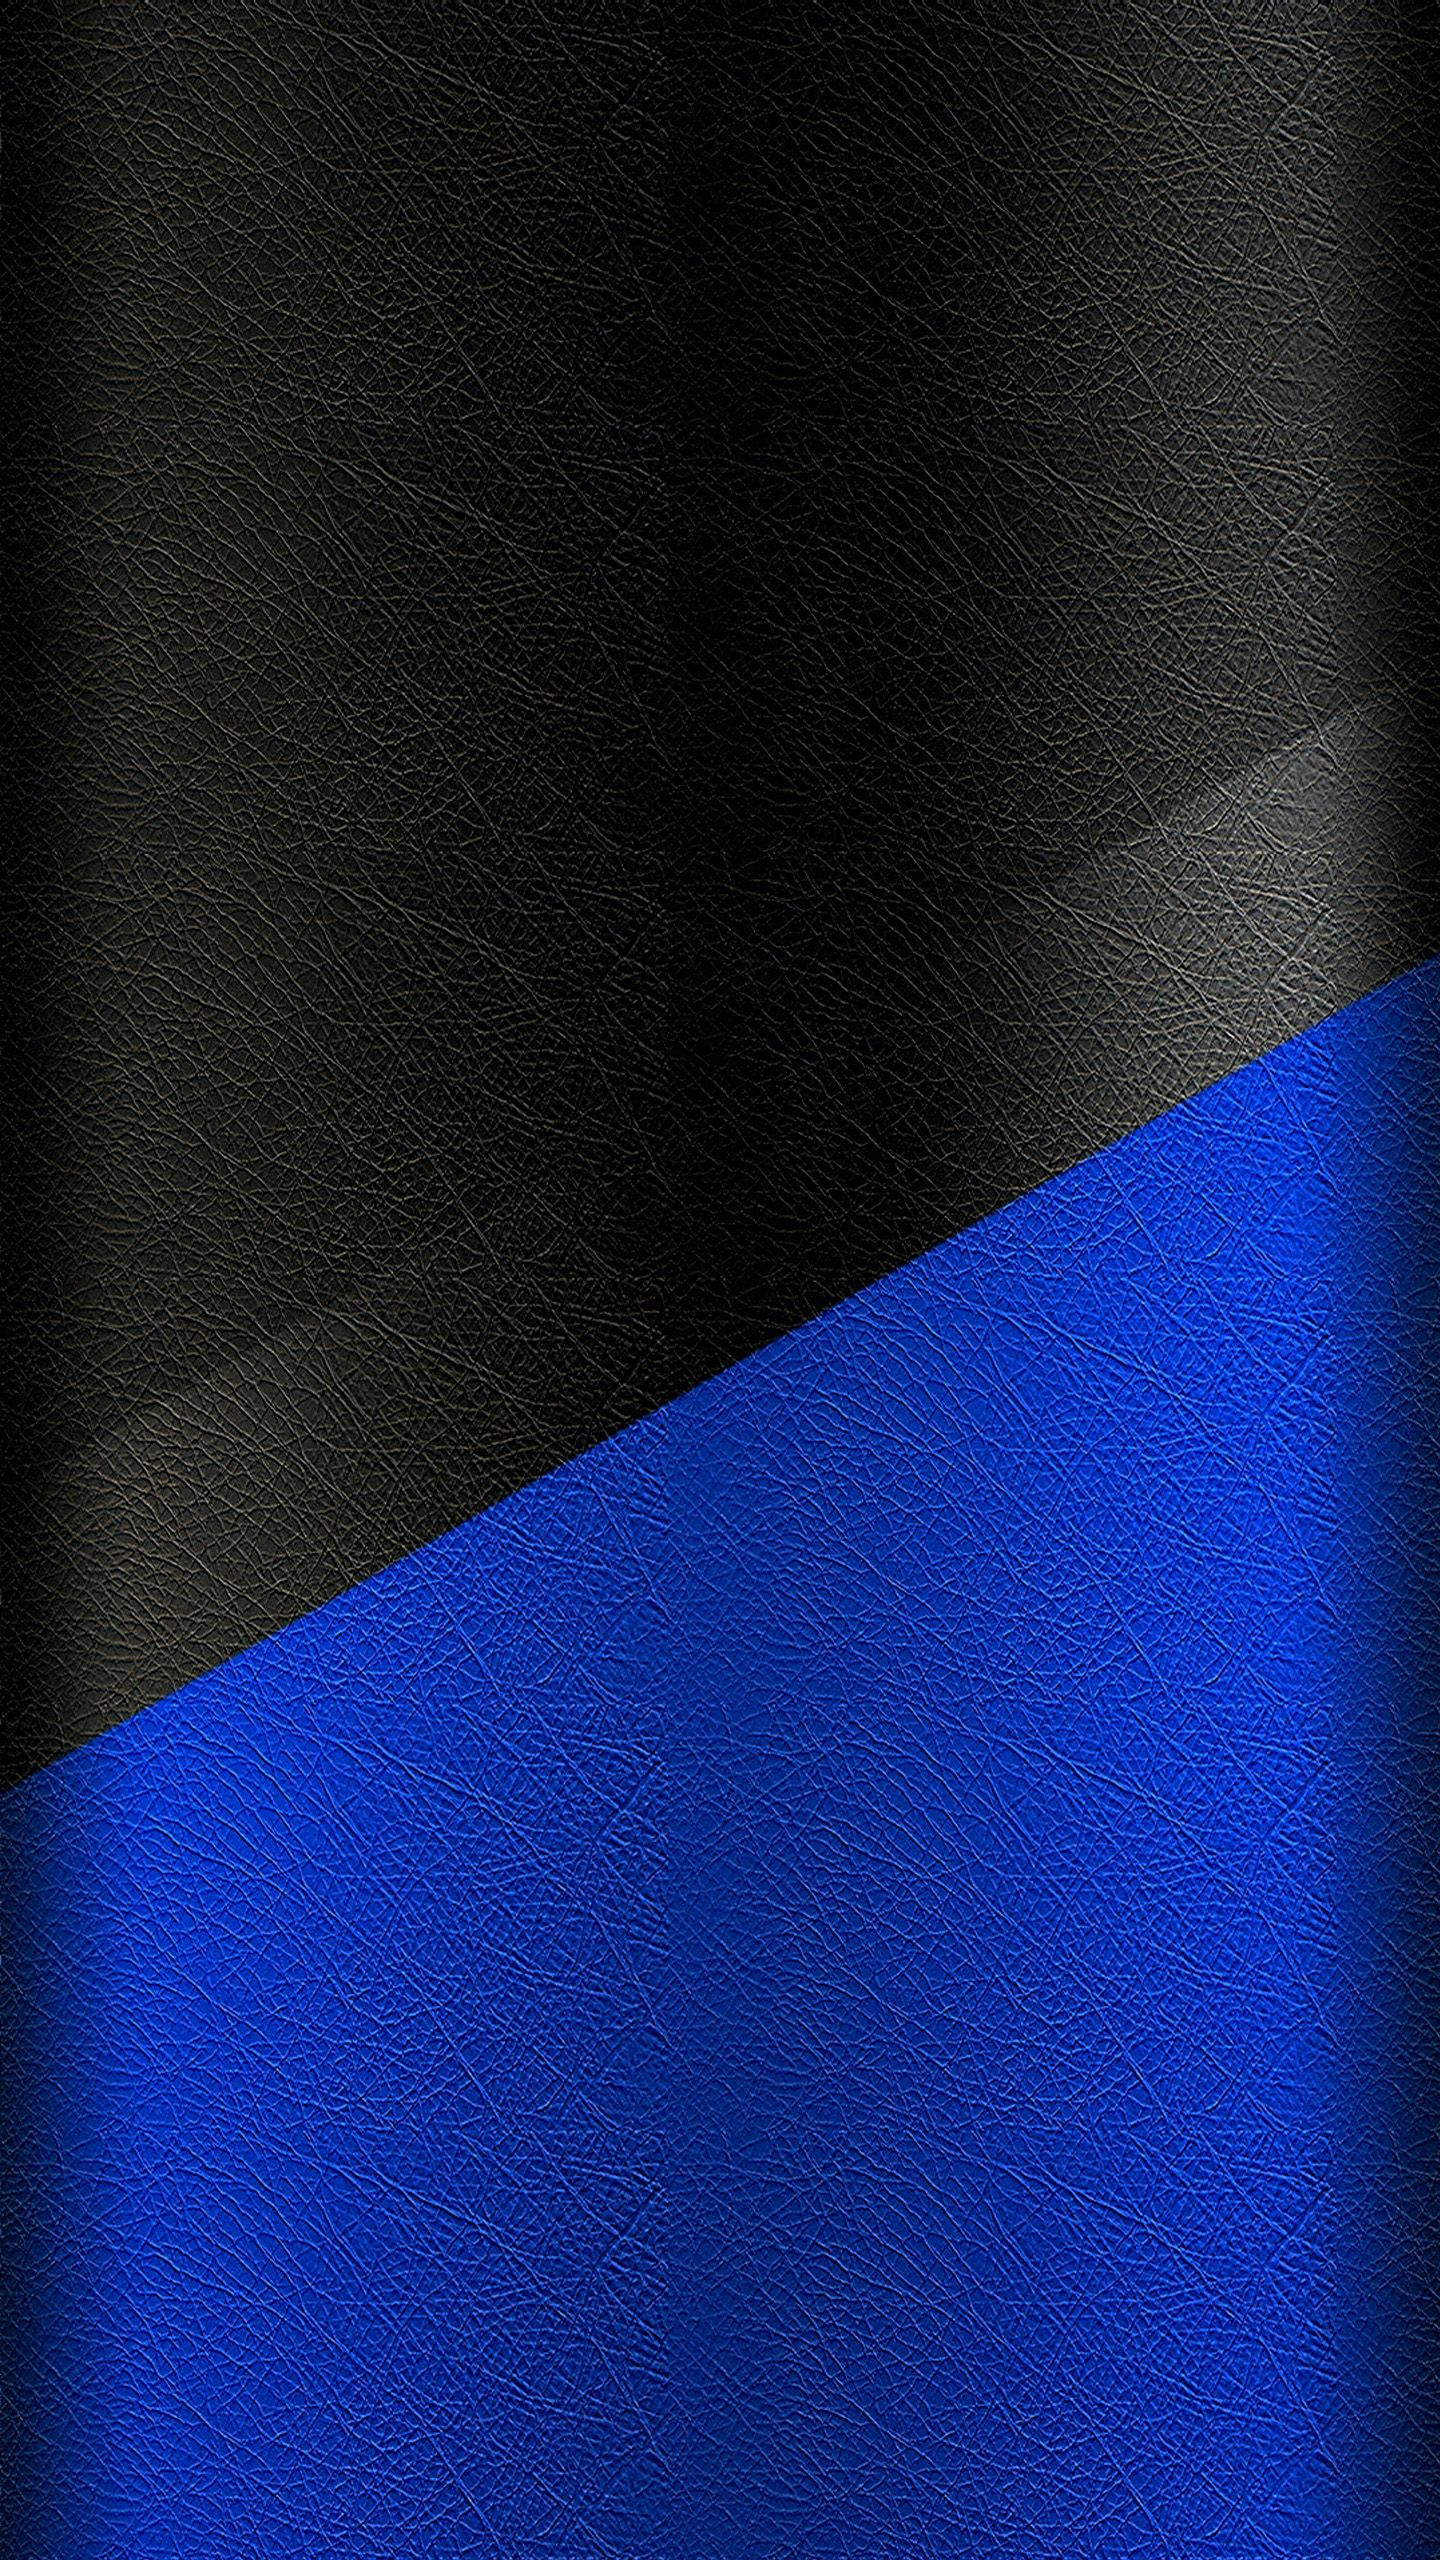 Dark S7 Edge Wallpaper 02 Black and Blue Leather Pattern